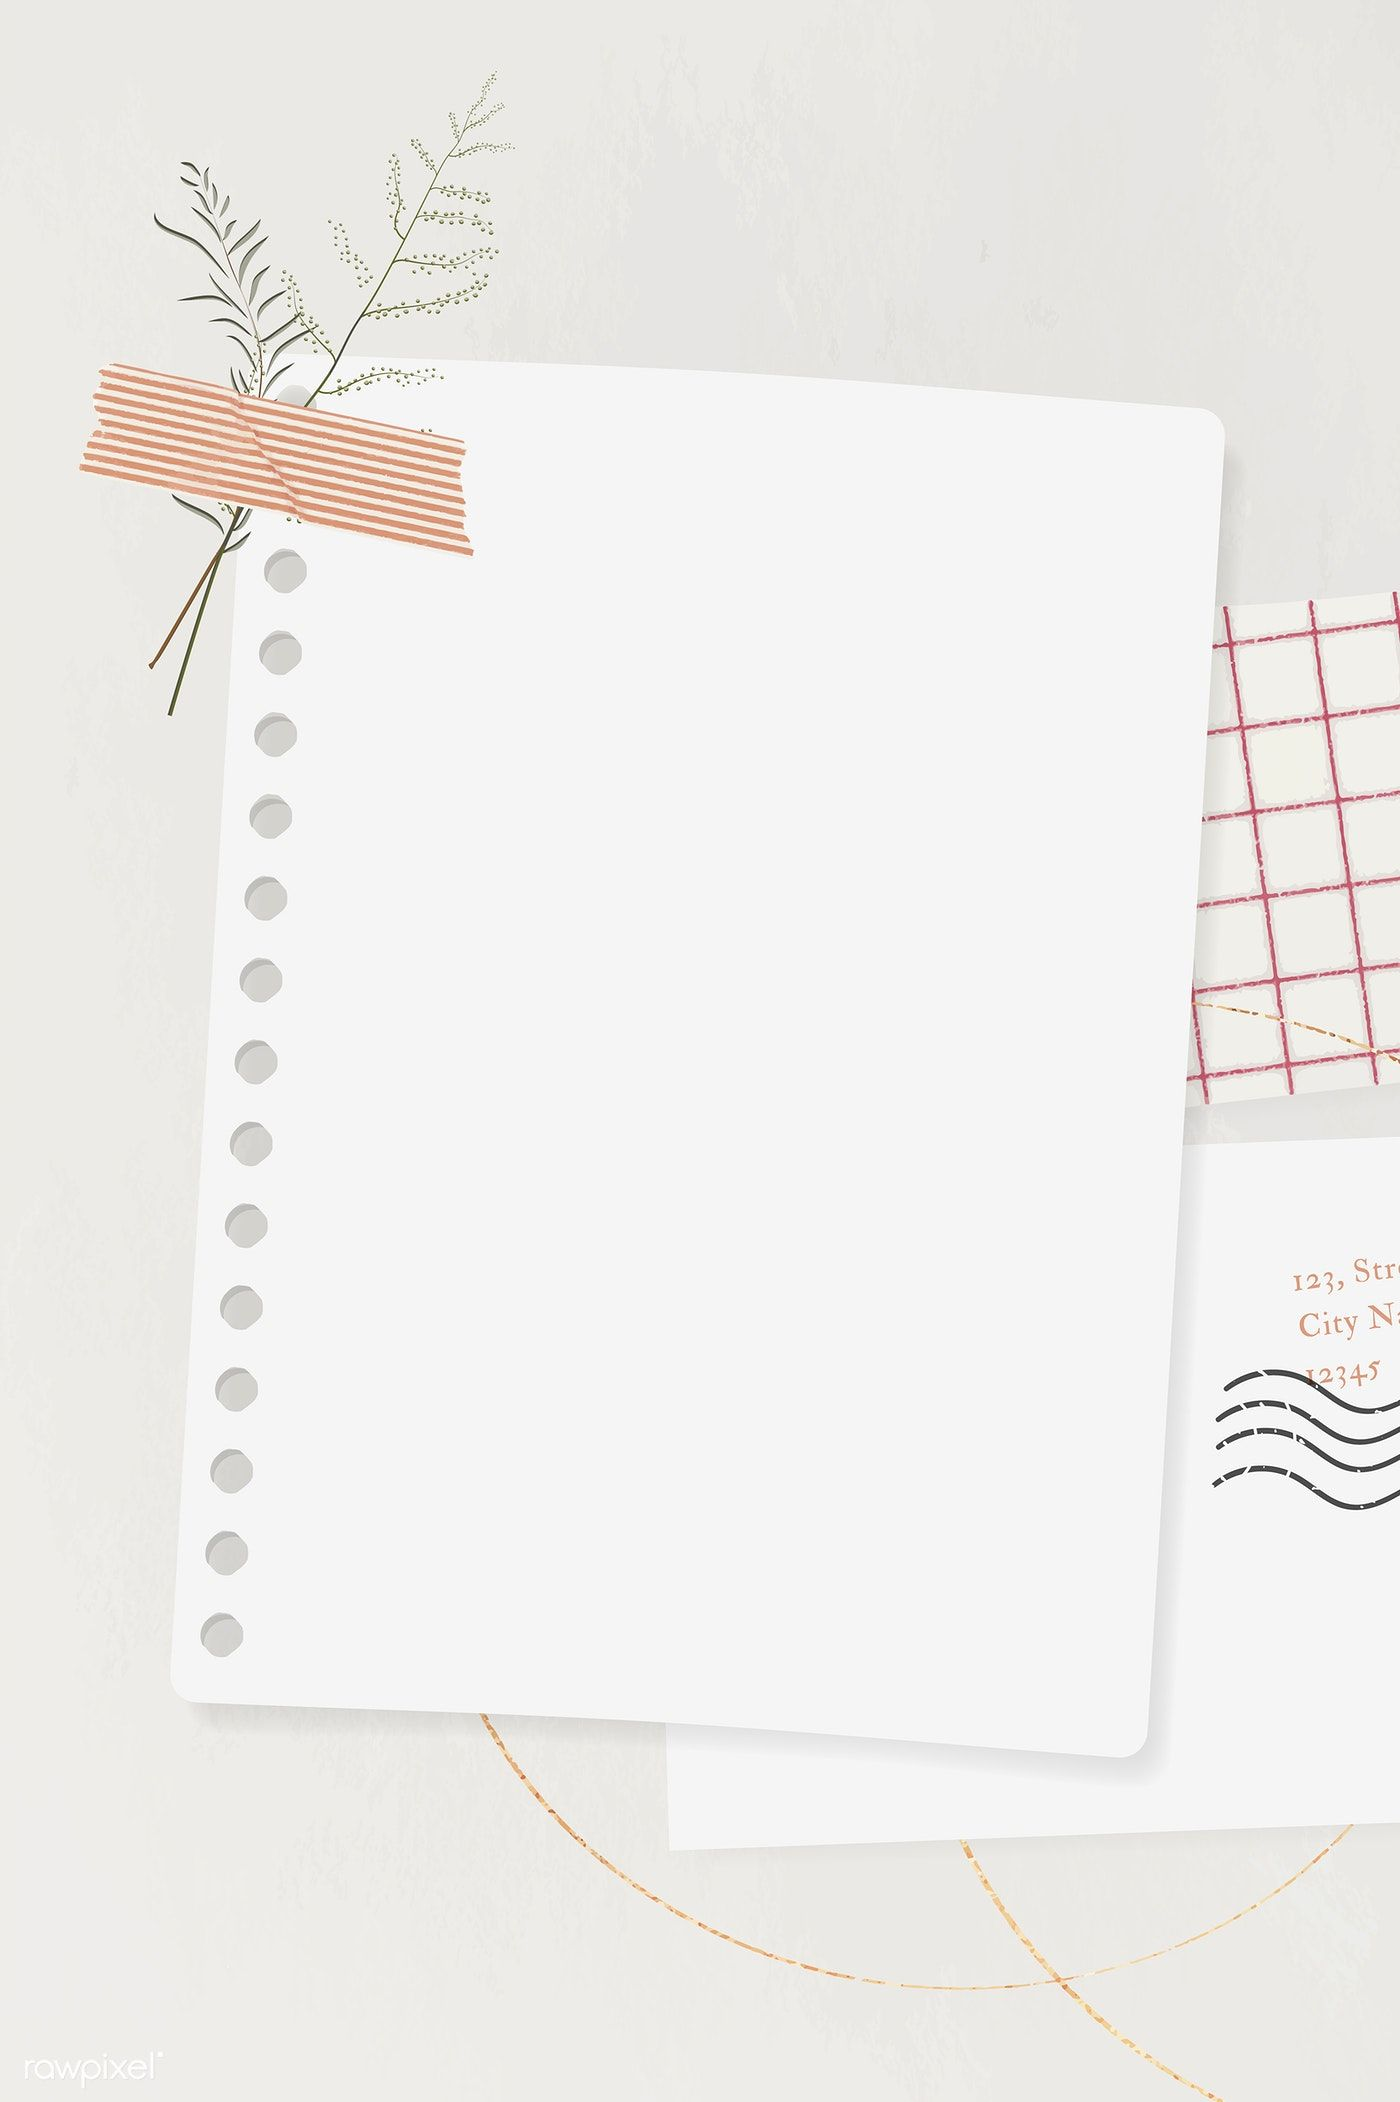 Blank Paper With Washi Tape Template Vector Premium Image By Rawpixel Com Ningzk V Instagram Frame Template Frame Template Instagram Frame